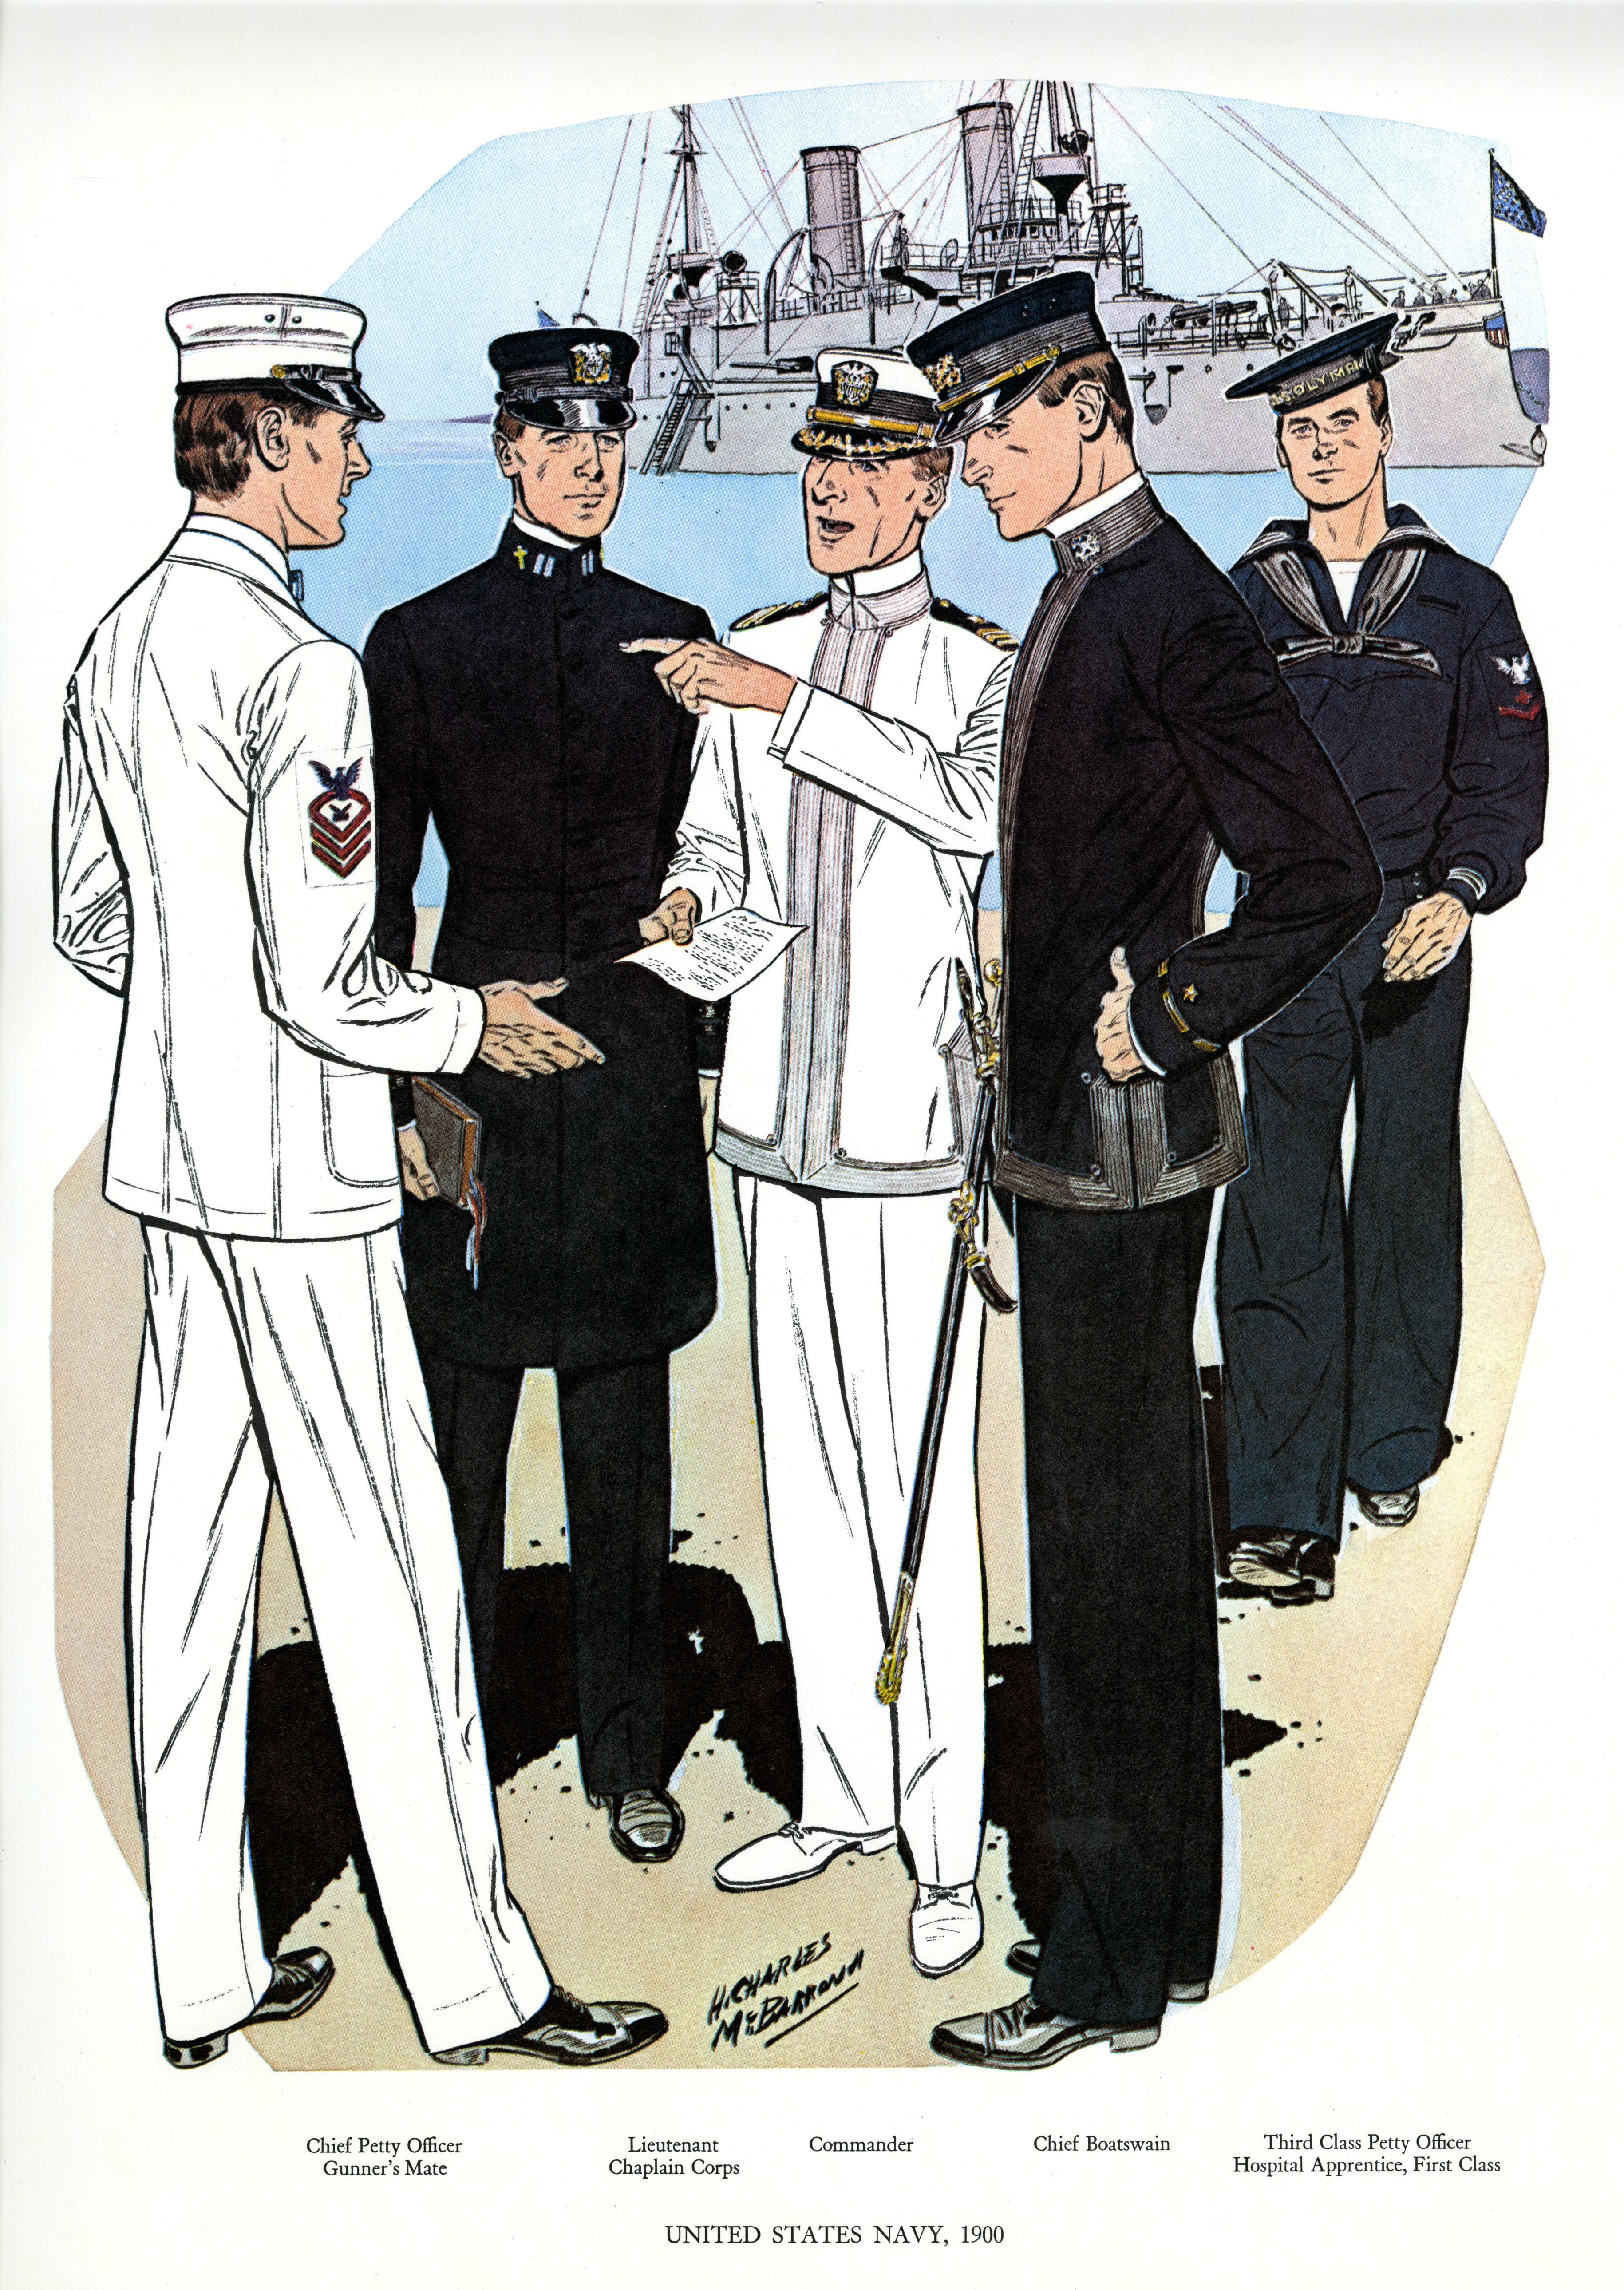 uniforms of the us navy 1900